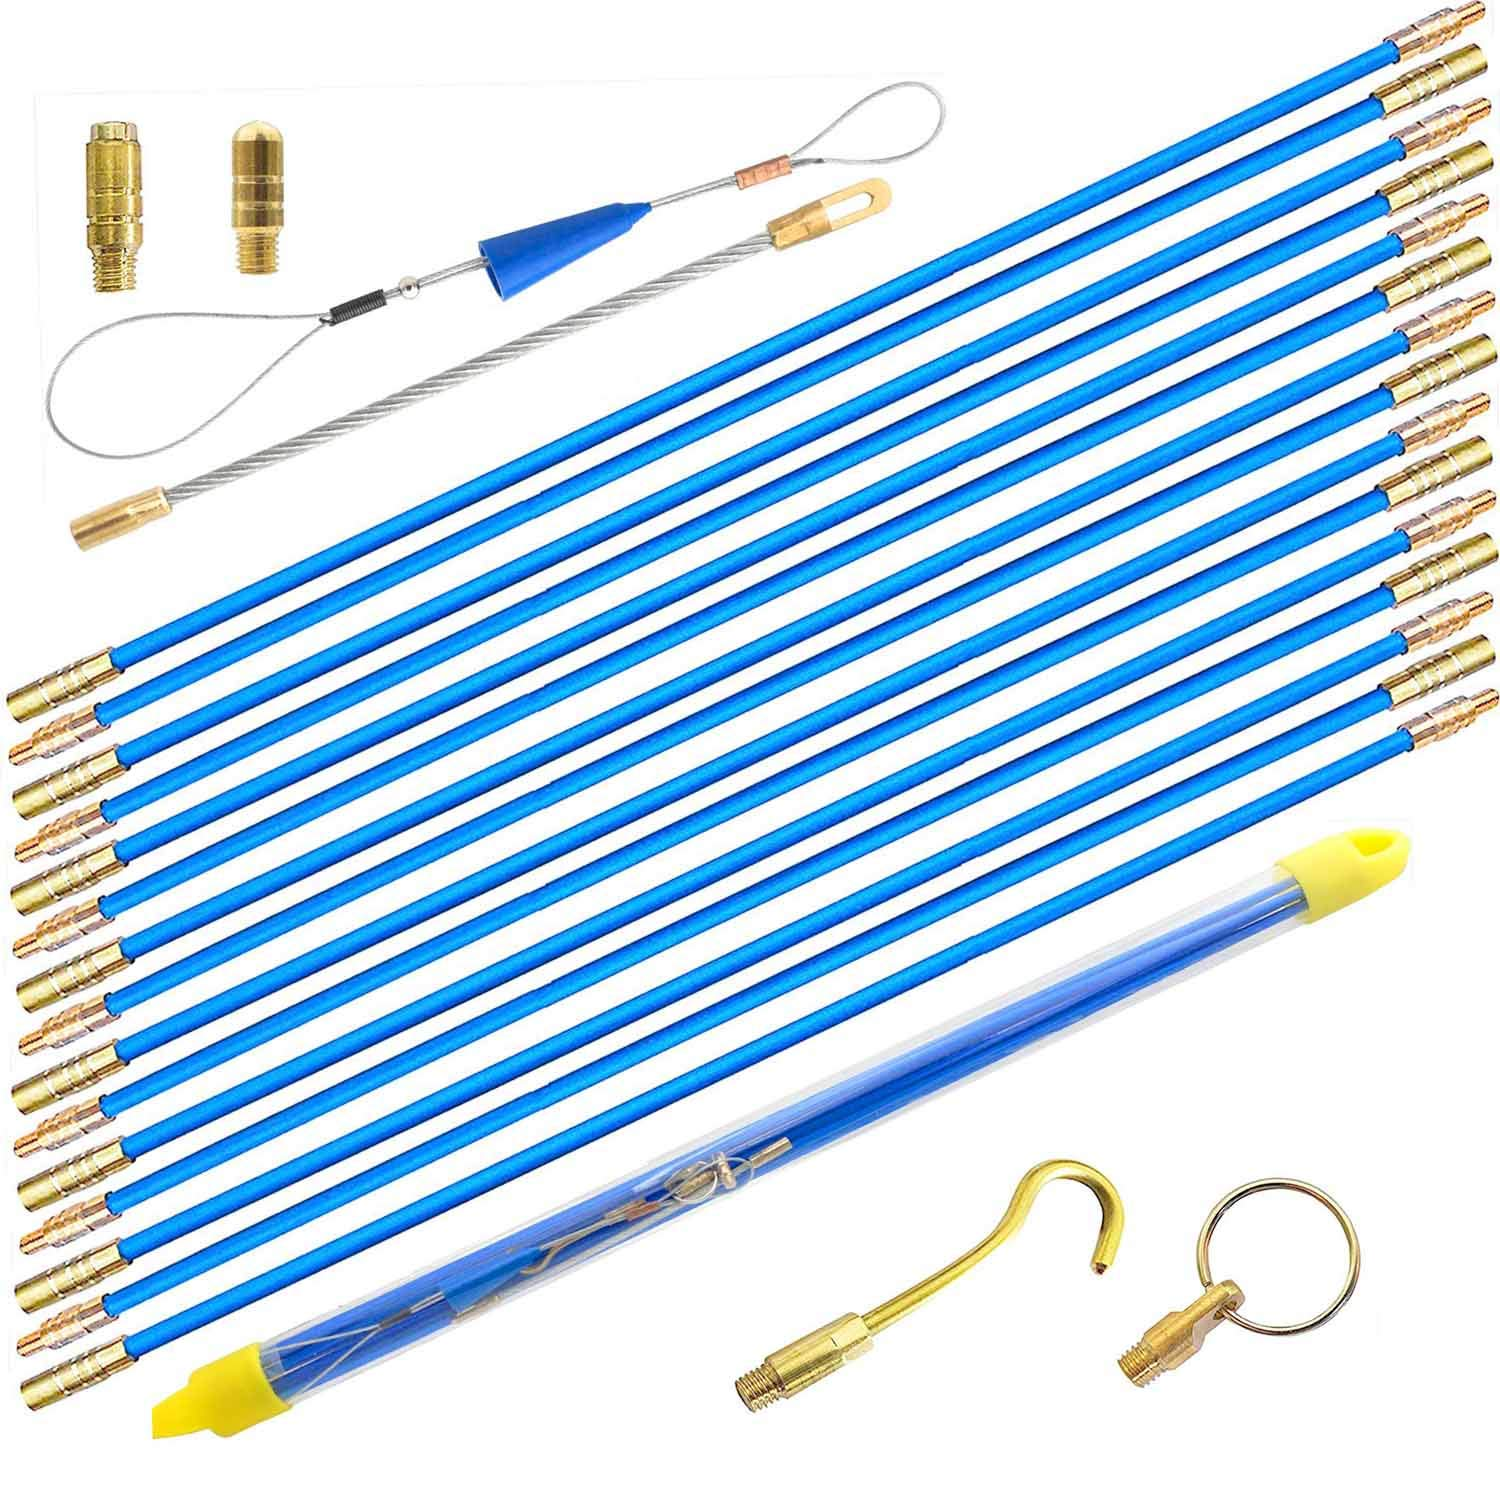 50' Wire Noodler Fiberglass Cable Wire Running Rod Coaxial Electrical Connectable Fish Tape Pull Kit With Hook And Hole Kit In Transparent Tube, Blue by WXTOOLS